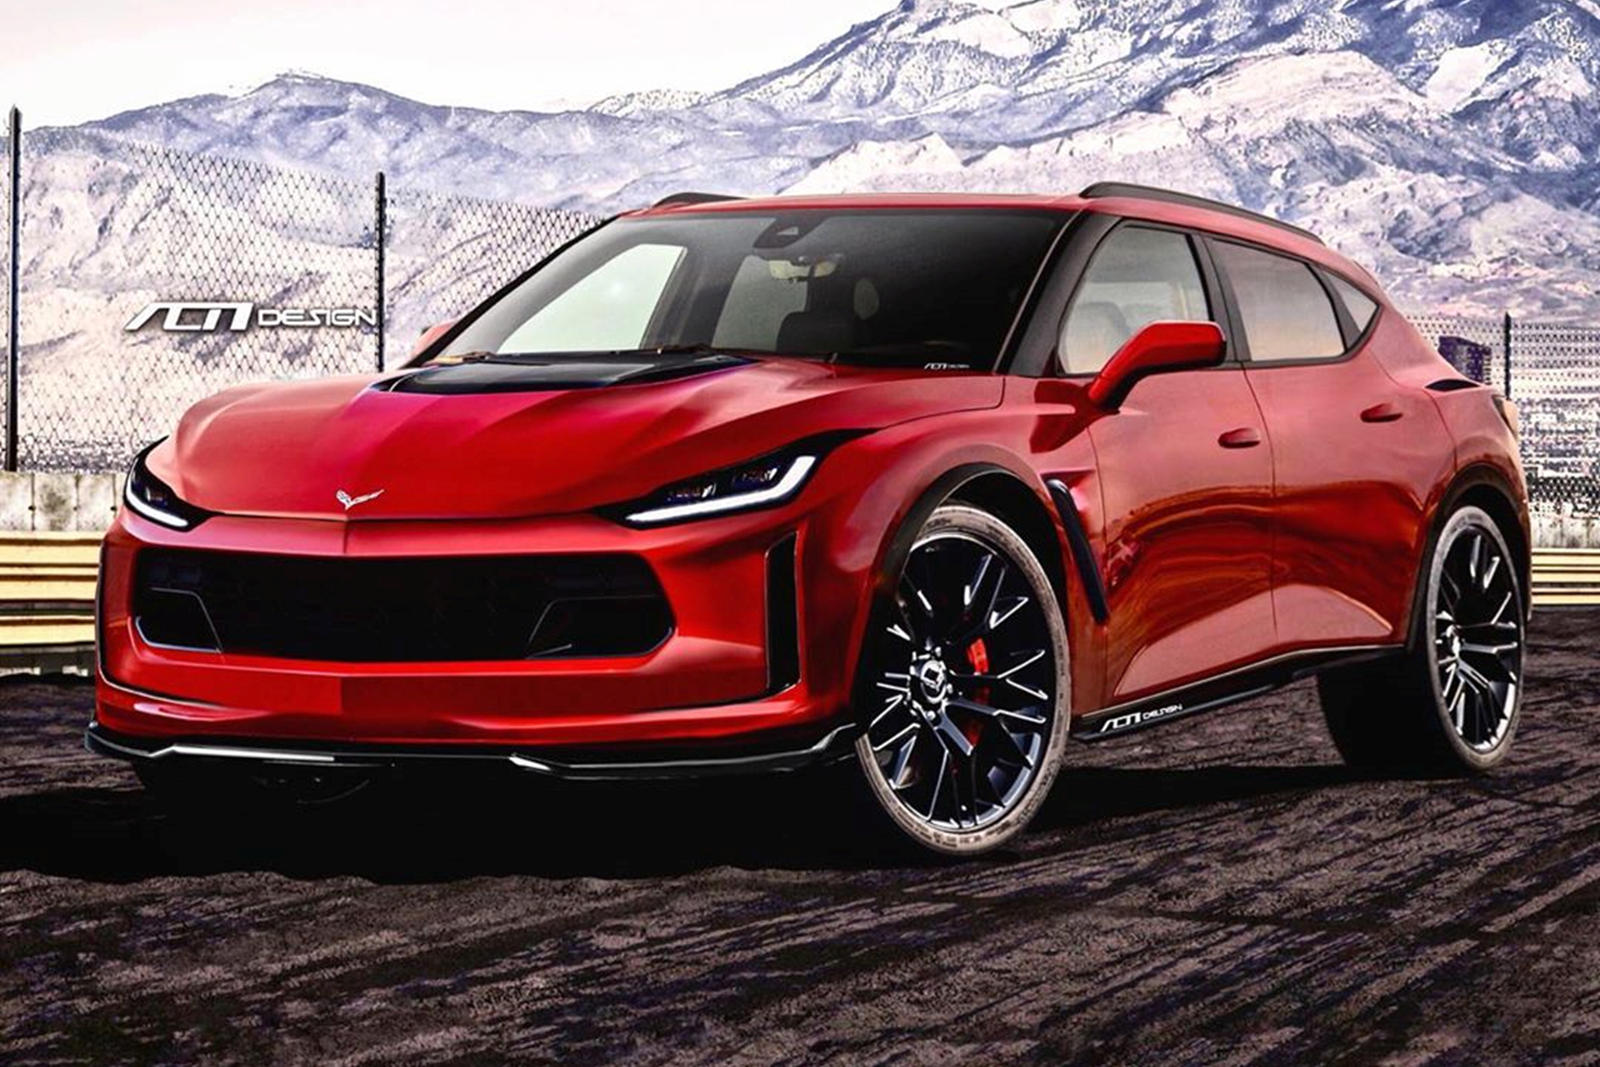 What If Chevrolet Made A Corvette SUV?